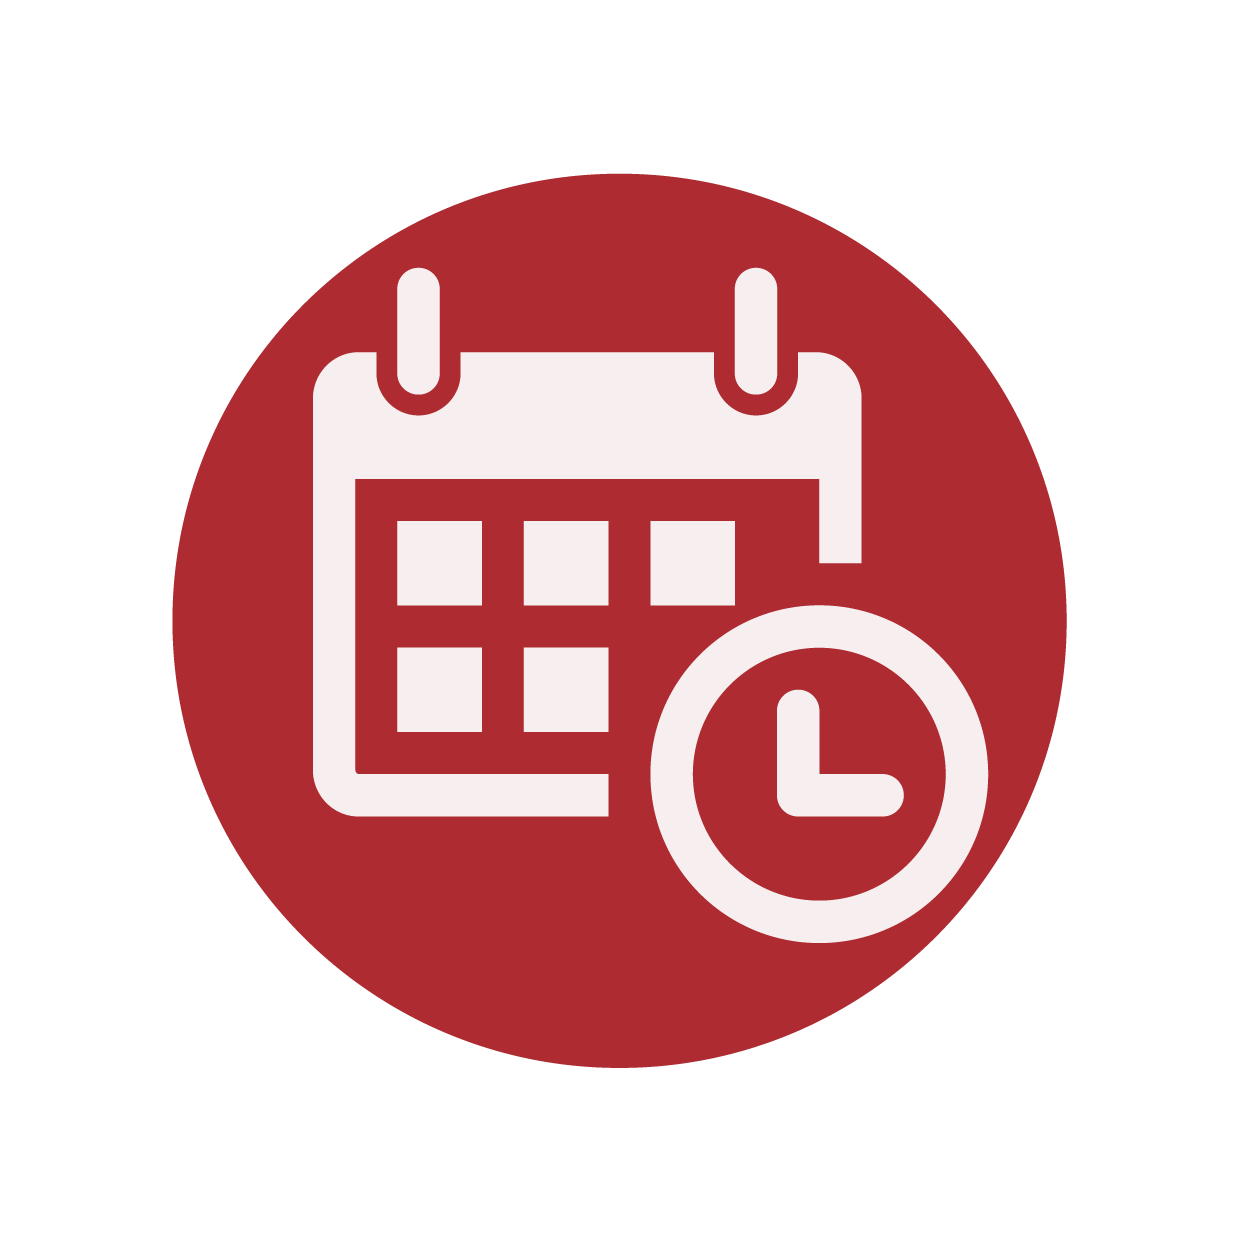 calendar-with-a-clock-time-tools-01.png